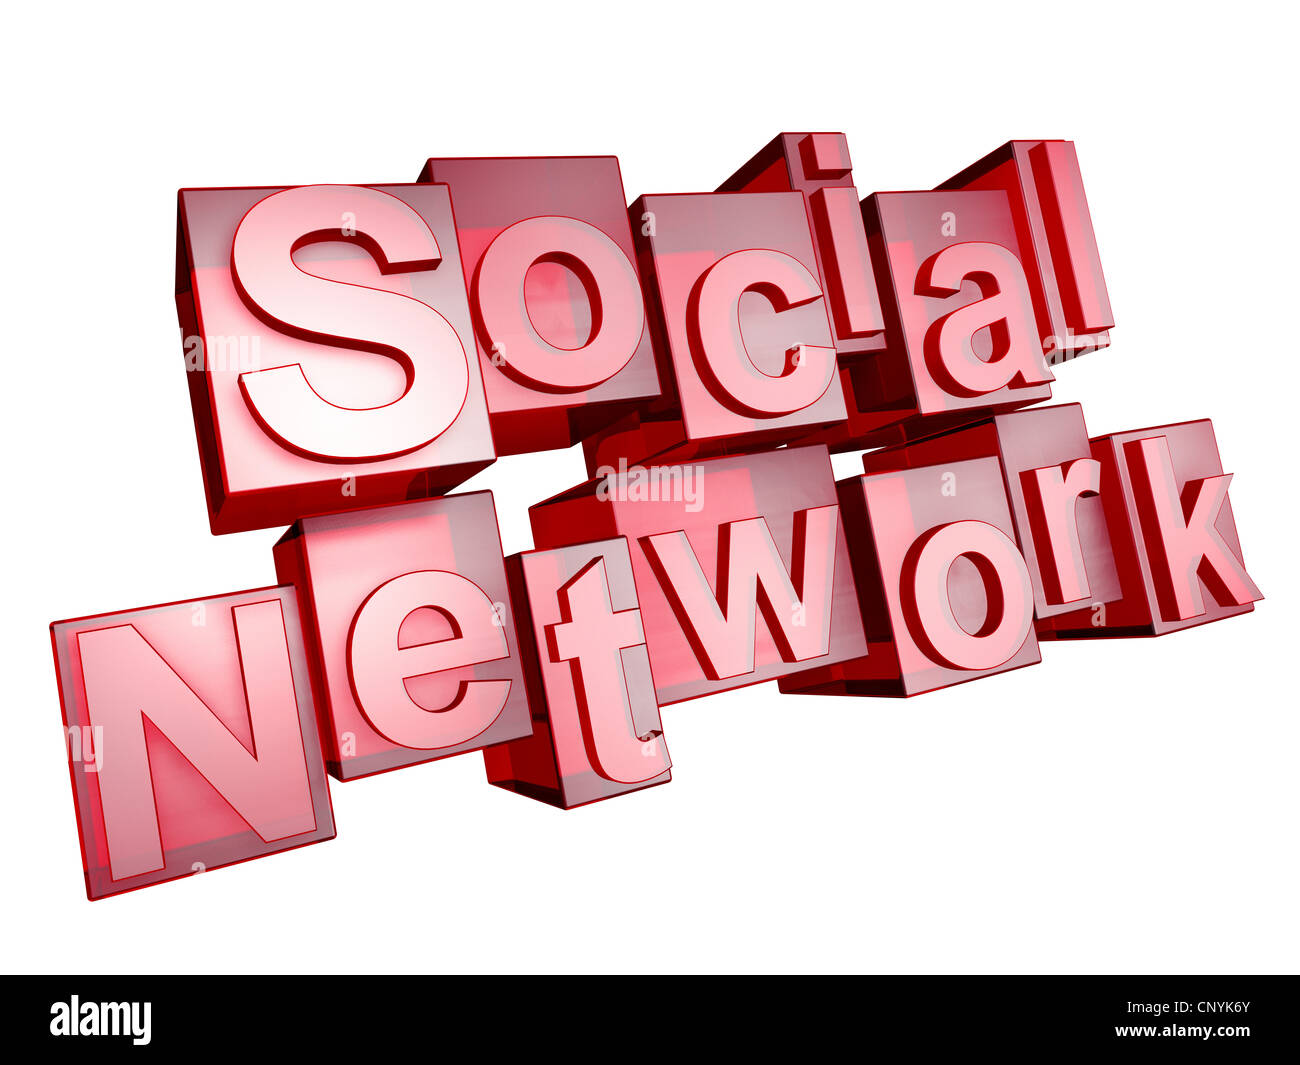 The word 'Social Network' in 3D letters on white background - Stock Image